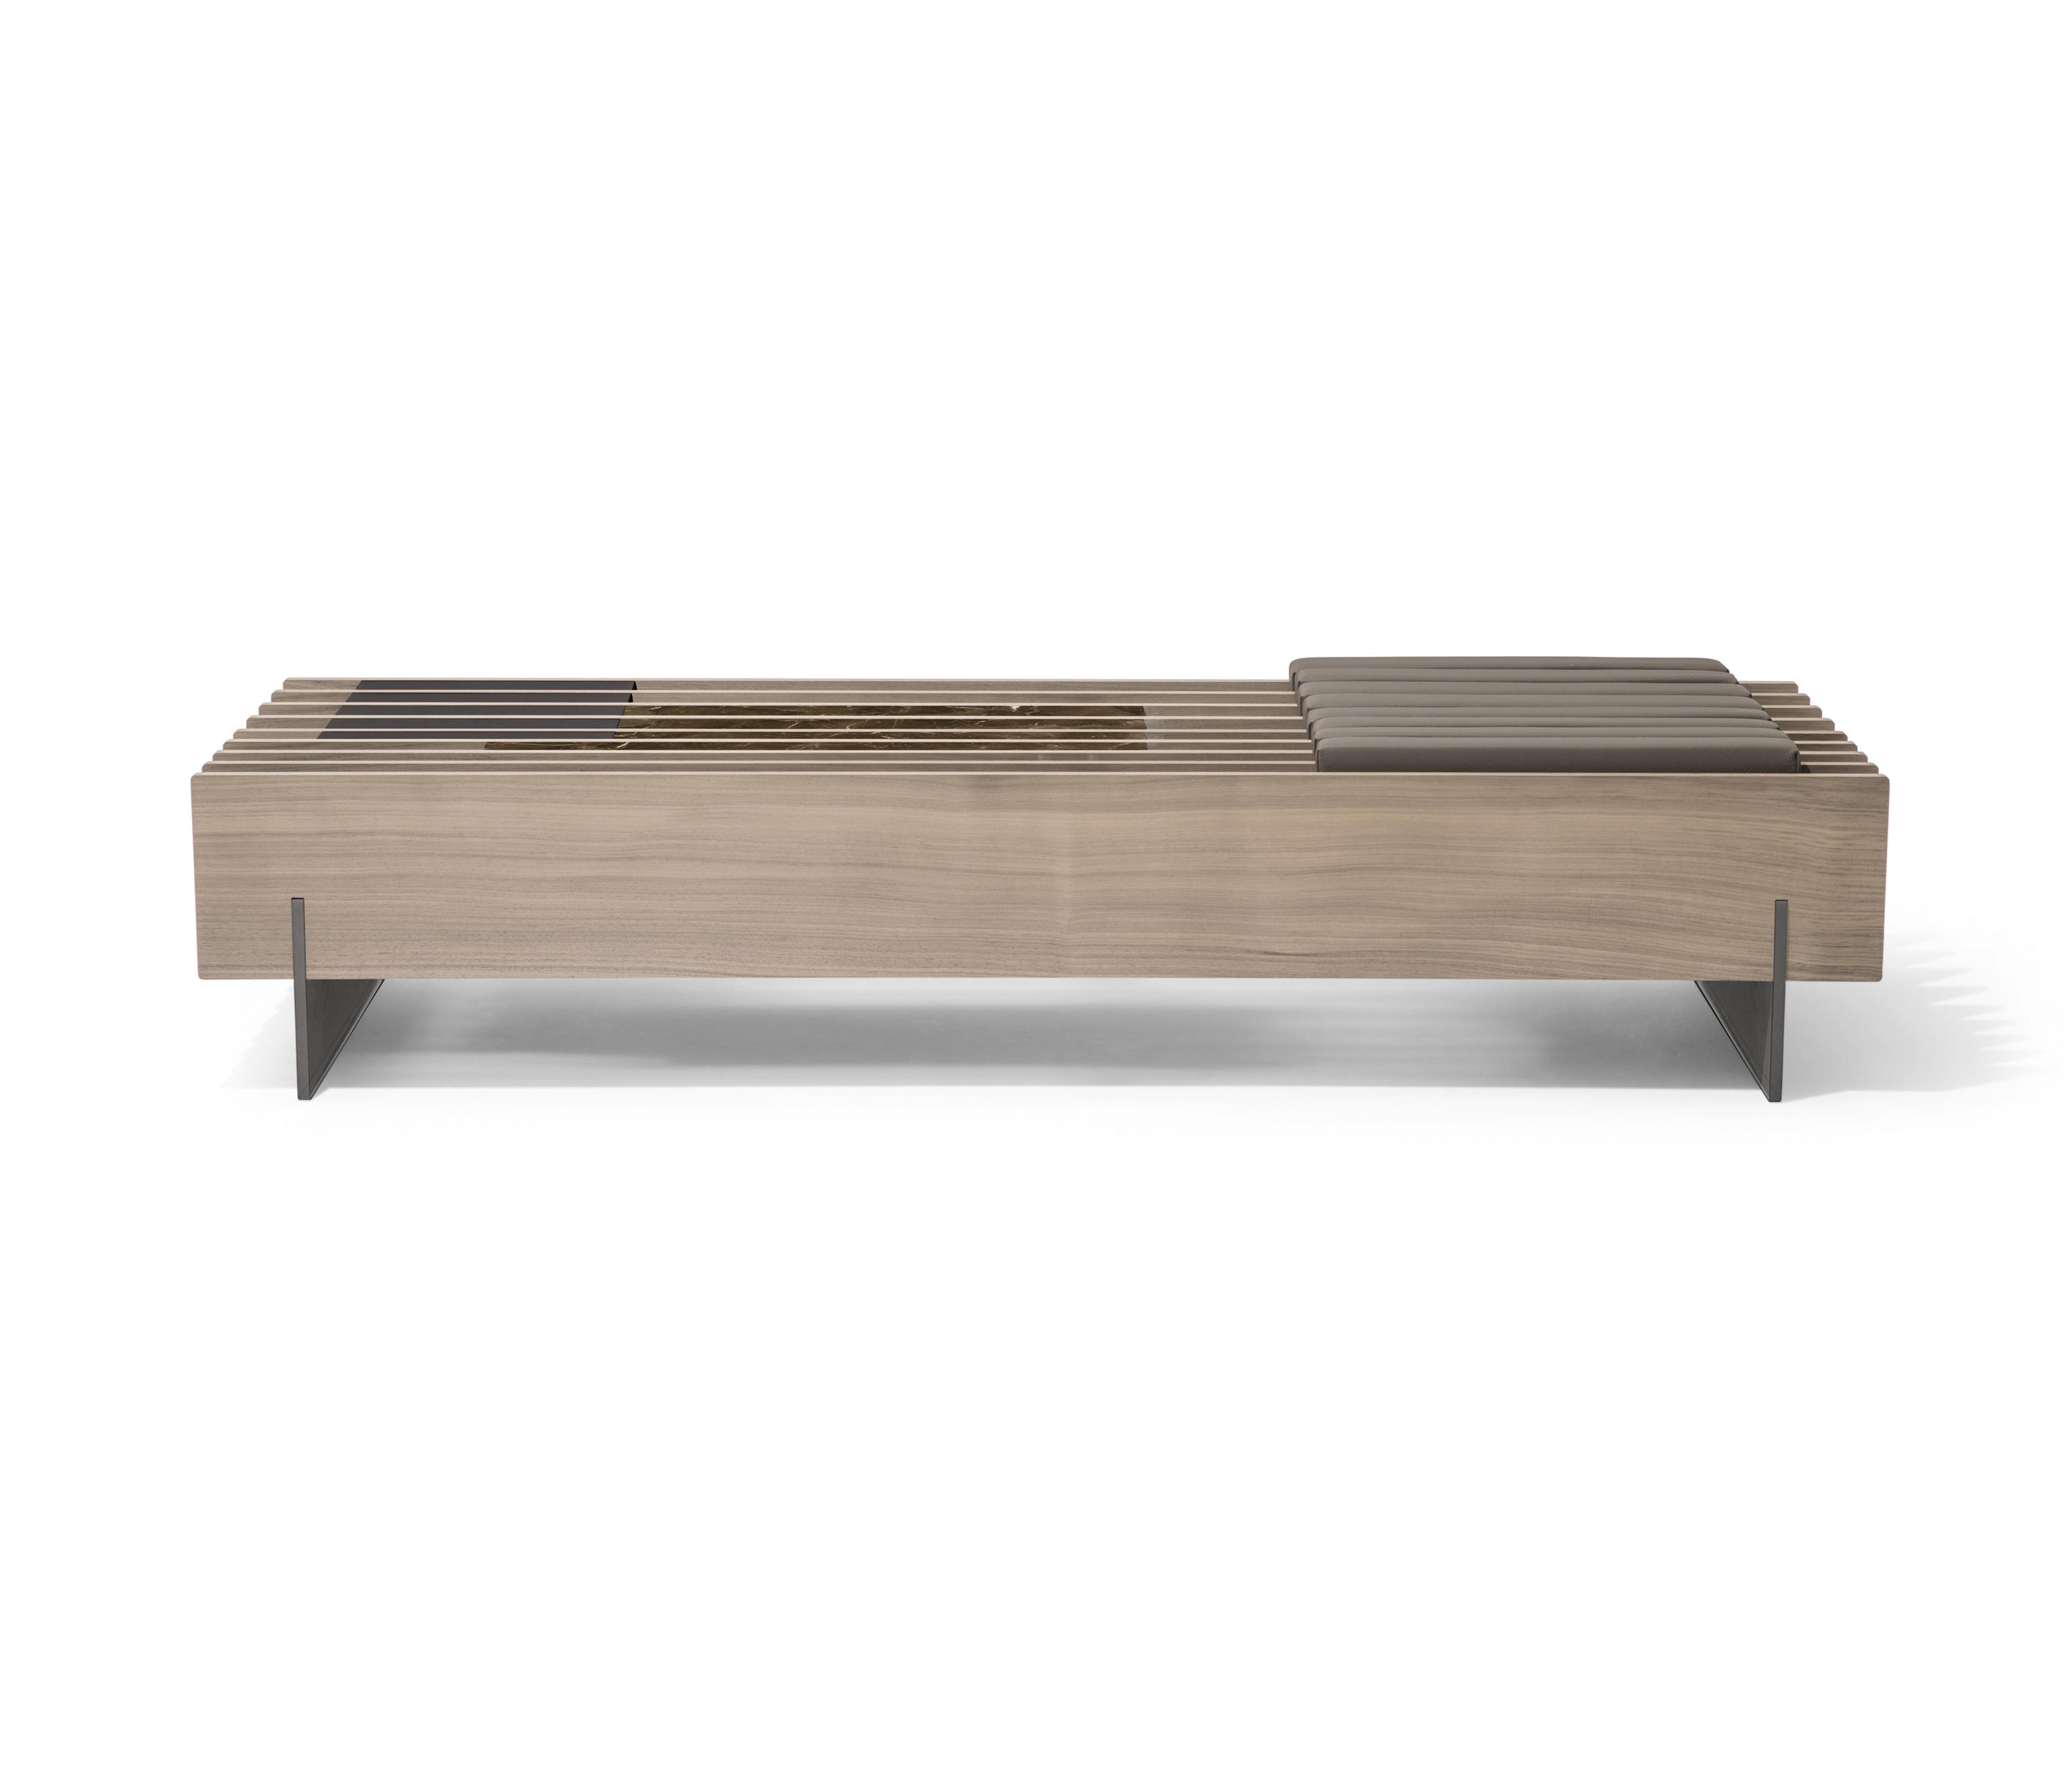 Remarkable Fit Bench Benches From Giorgetti Architonic Short Links Chair Design For Home Short Linksinfo